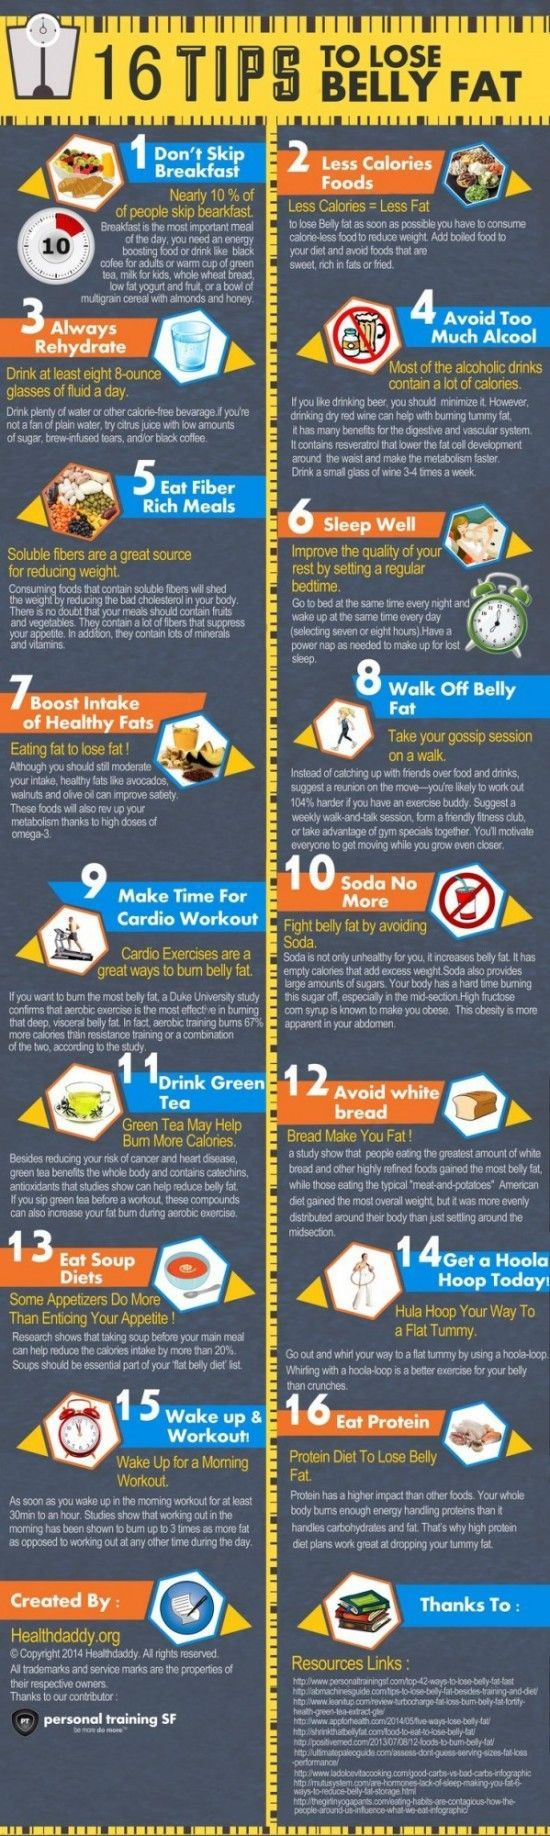 No weight loss on lite n easy photo 10